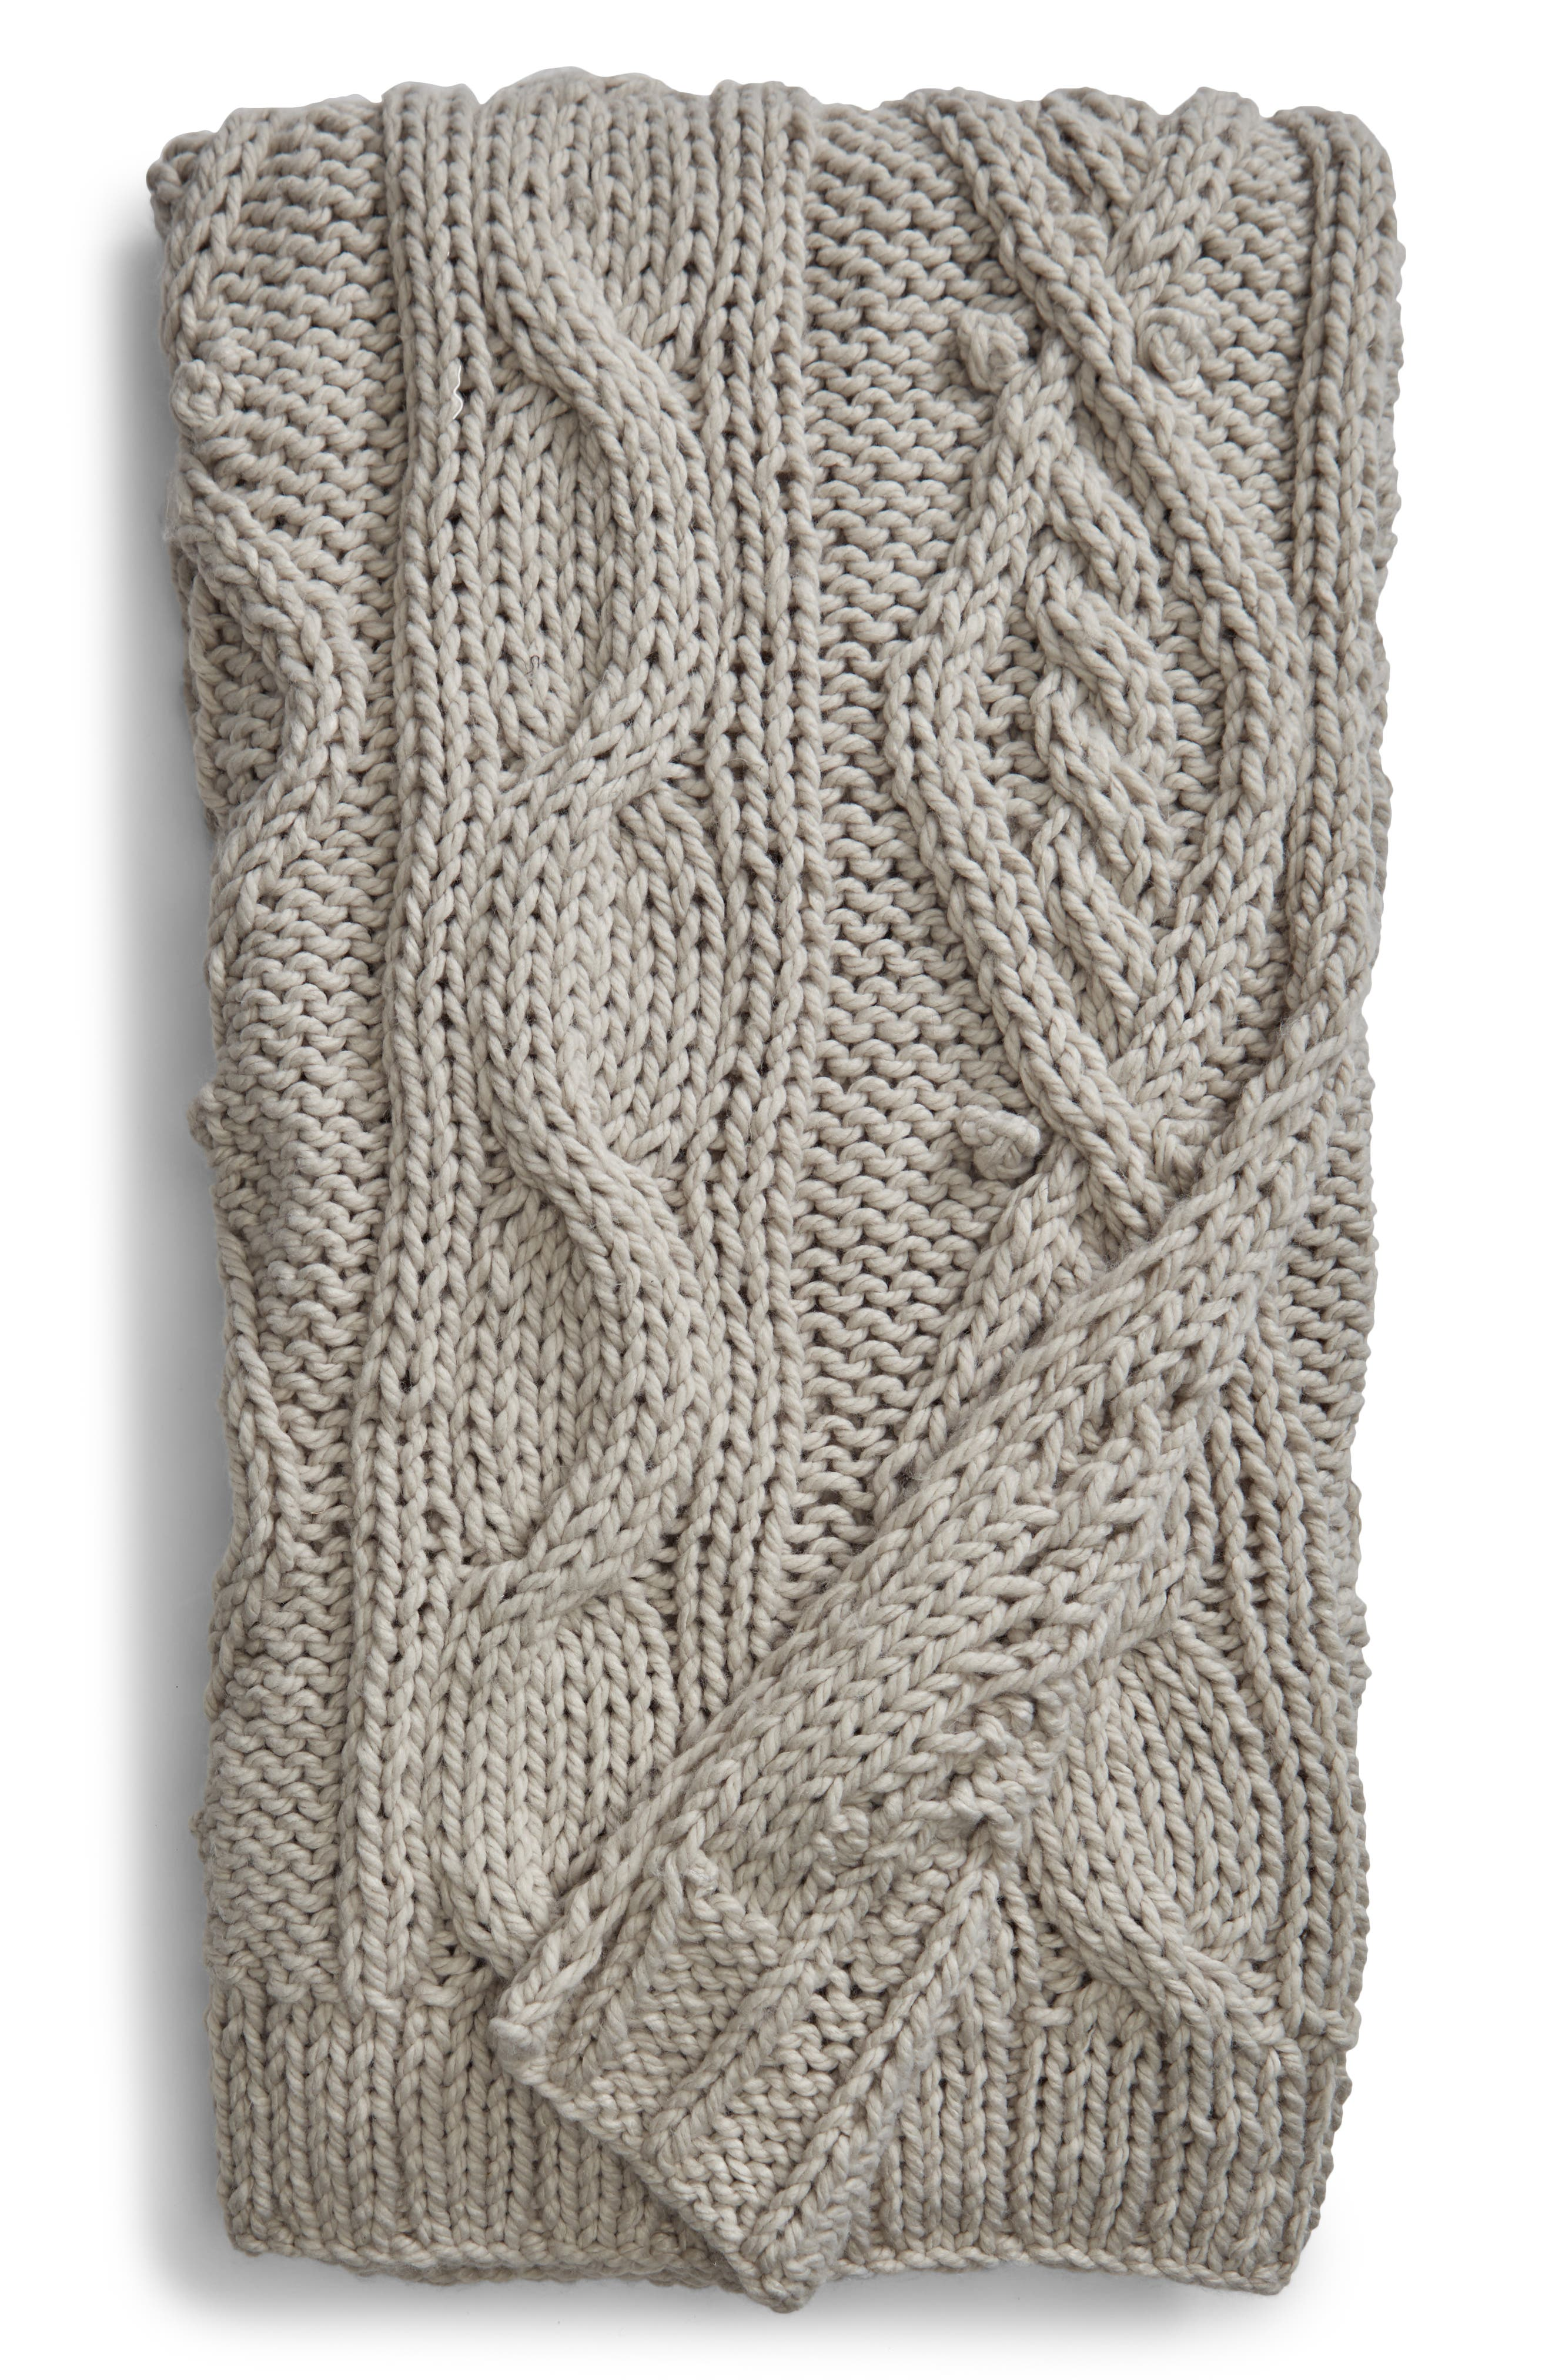 Chunky Cable Knit Throw Blanket,                             Main thumbnail 1, color,                             020